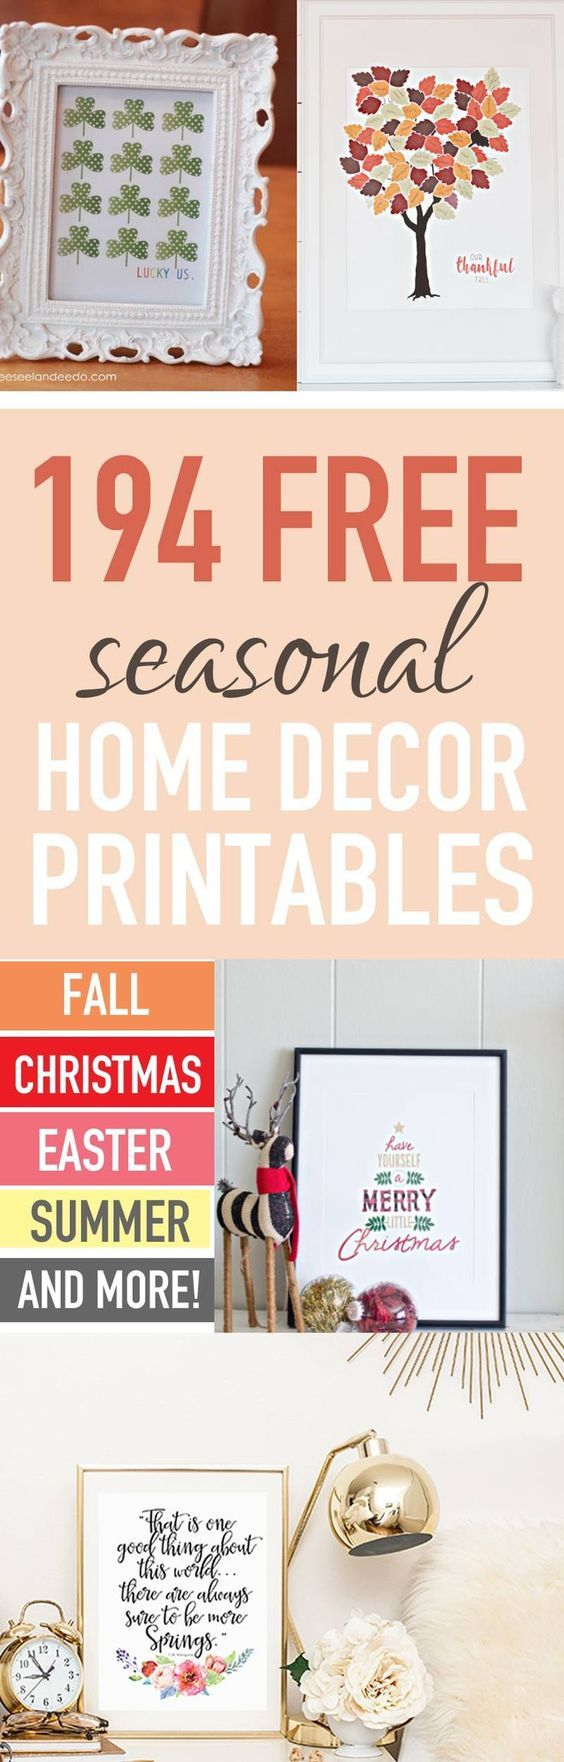 Whoa--you won't believe this list of 194 FREE SEASONAL HOME DECOR PRINTABLES…